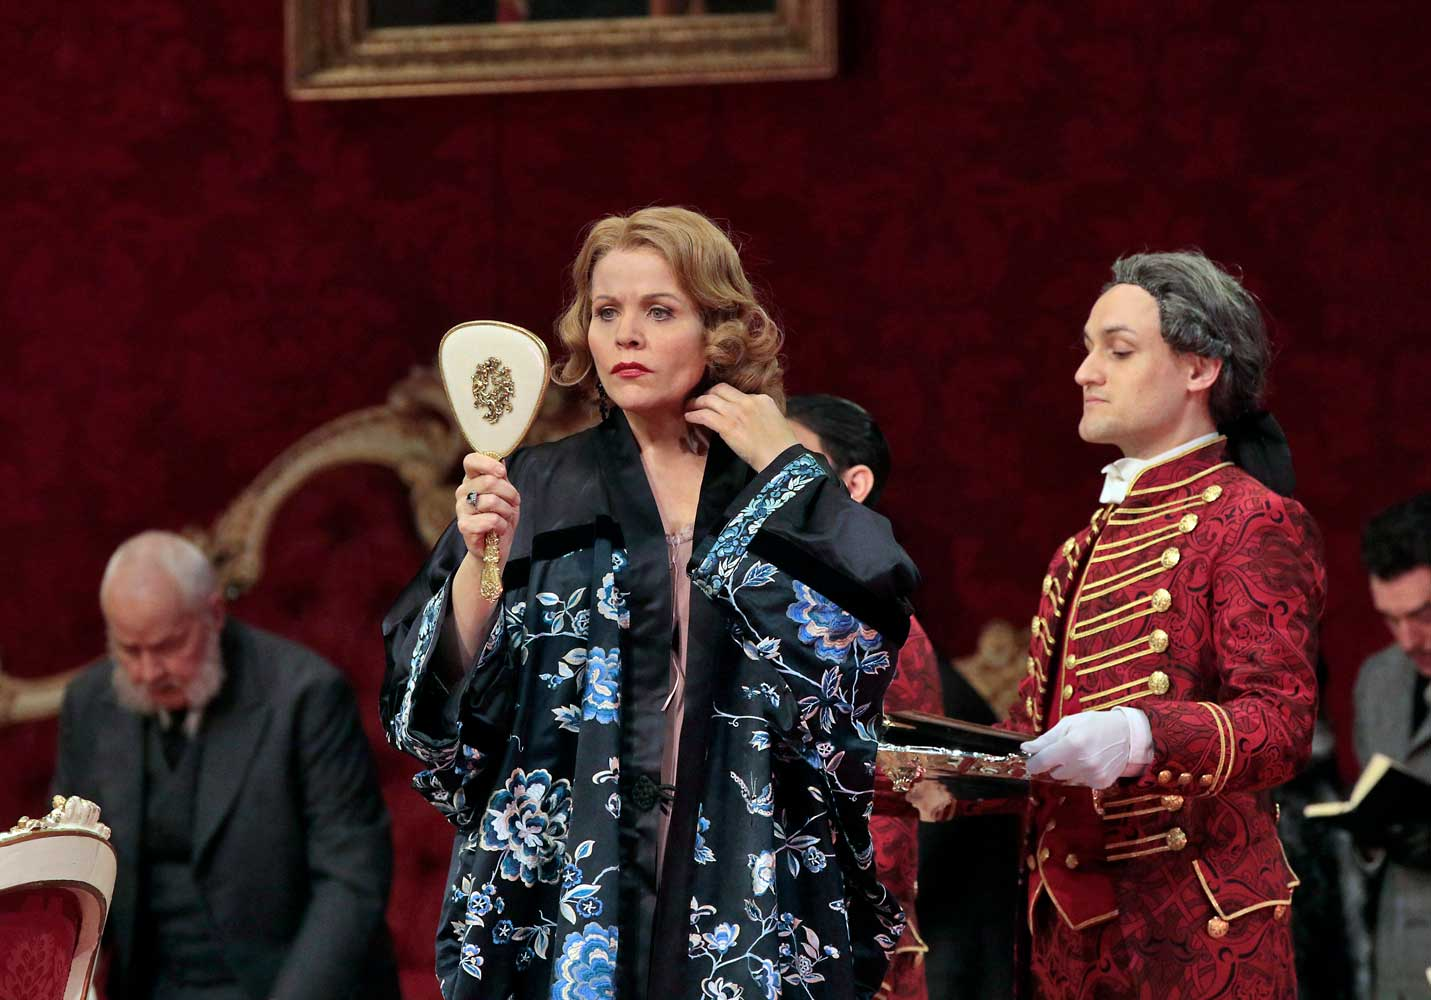 Renée Fleming as the Marschallin in Strauss's Der Rosenkavalier. Photo by Ken Howard/Metropolitan Opera.